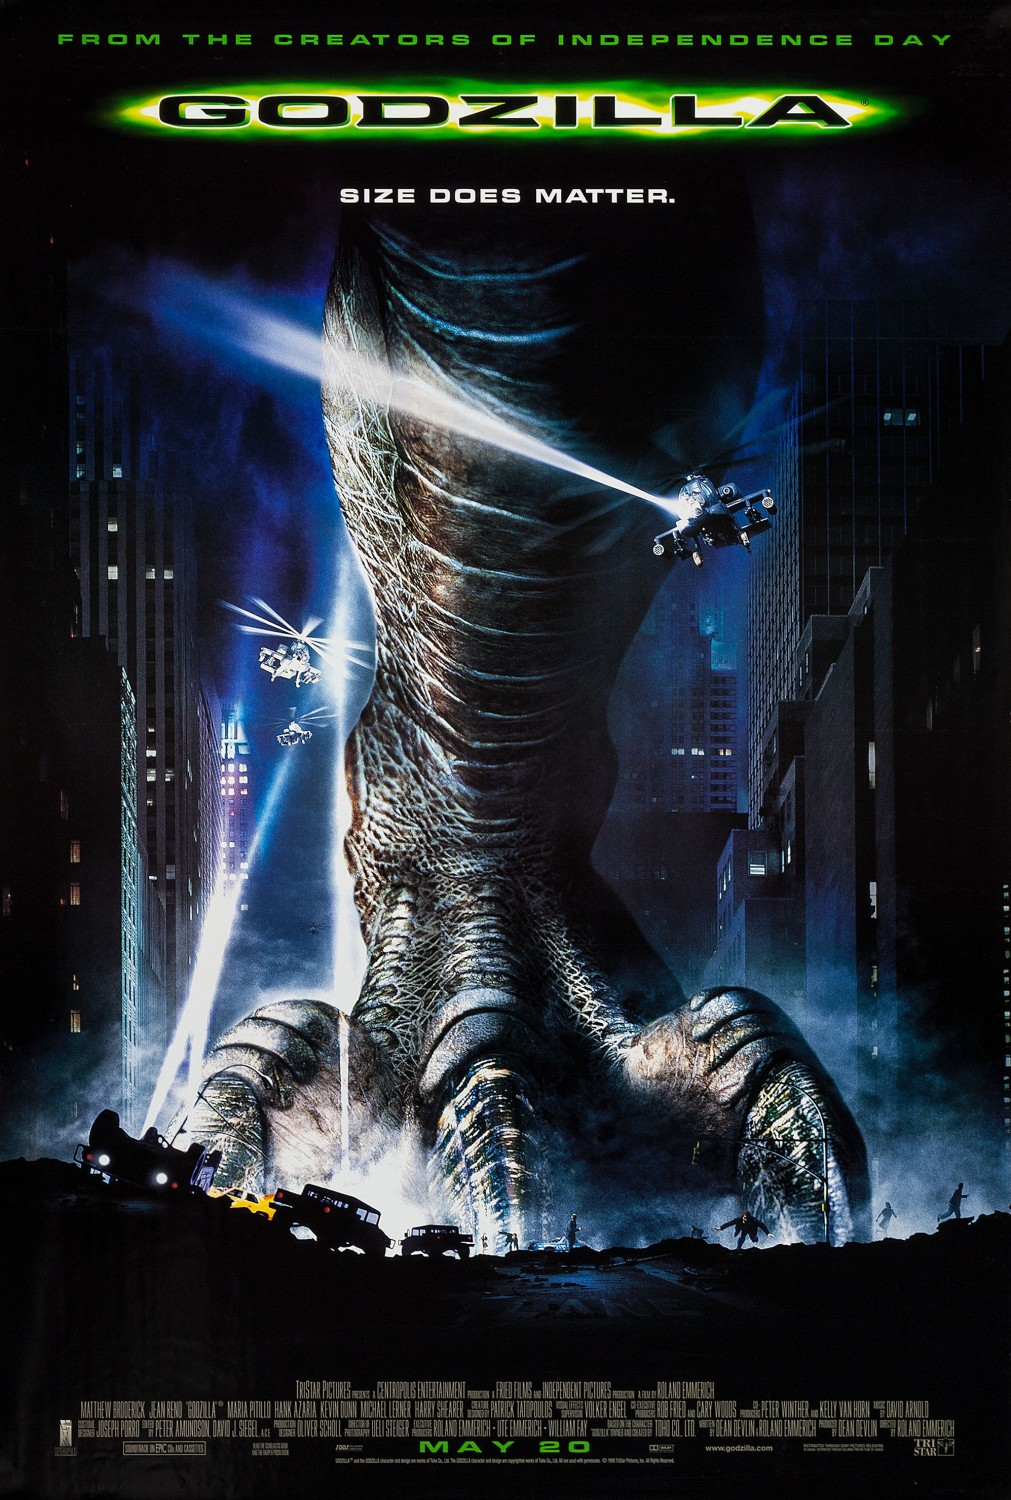 Godzilla (1998) - Directed by: Roland EmmerichStarring: Matthew Broderick,Jean Reno, Maria Pitillo, Hank Azaria, Kevin Dunn, Michael LernerRated: PG-13 for Sci-Fi Monster Action/ViolenceRunning Time: 2 h 19 mTMM Score: 2 stars out of 5STRENGTHS: Dumb FunWEAKNESSES: Pointless Scenes and Characters, Length, Dated CGI, Writing, Directing